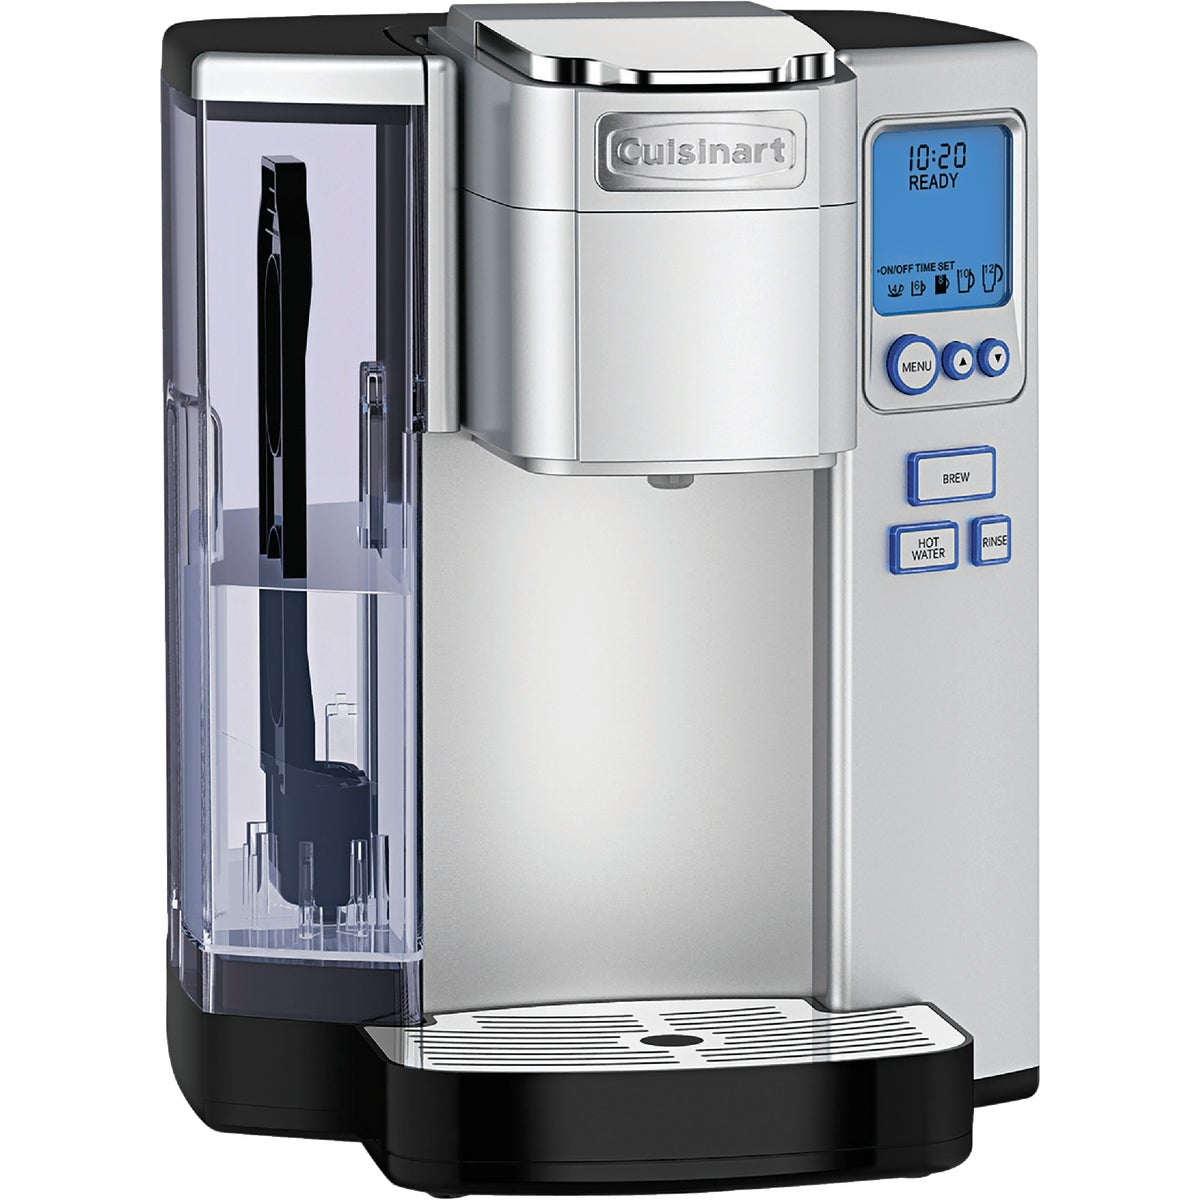 SINGLE SERVE COFFEEMAKER - SS-700 by Cuisinart